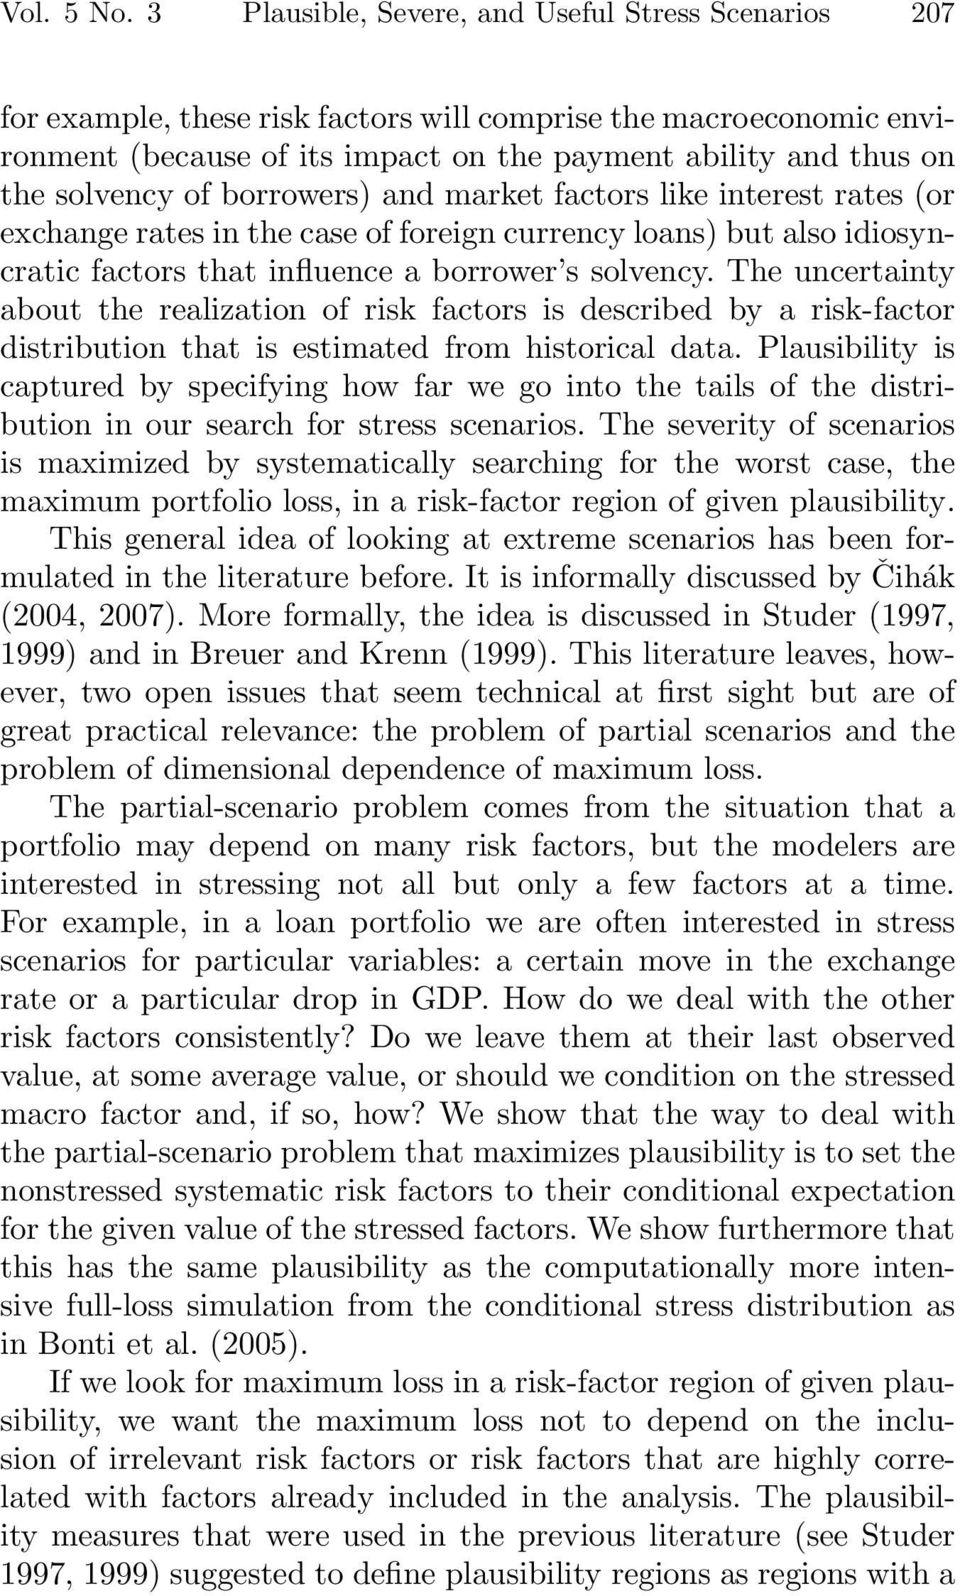 of borrowers) and market factors like interest rates (or exchange rates in the case of foreign currency loans) but also idiosyncratic factors that influence a borrower s solvency.